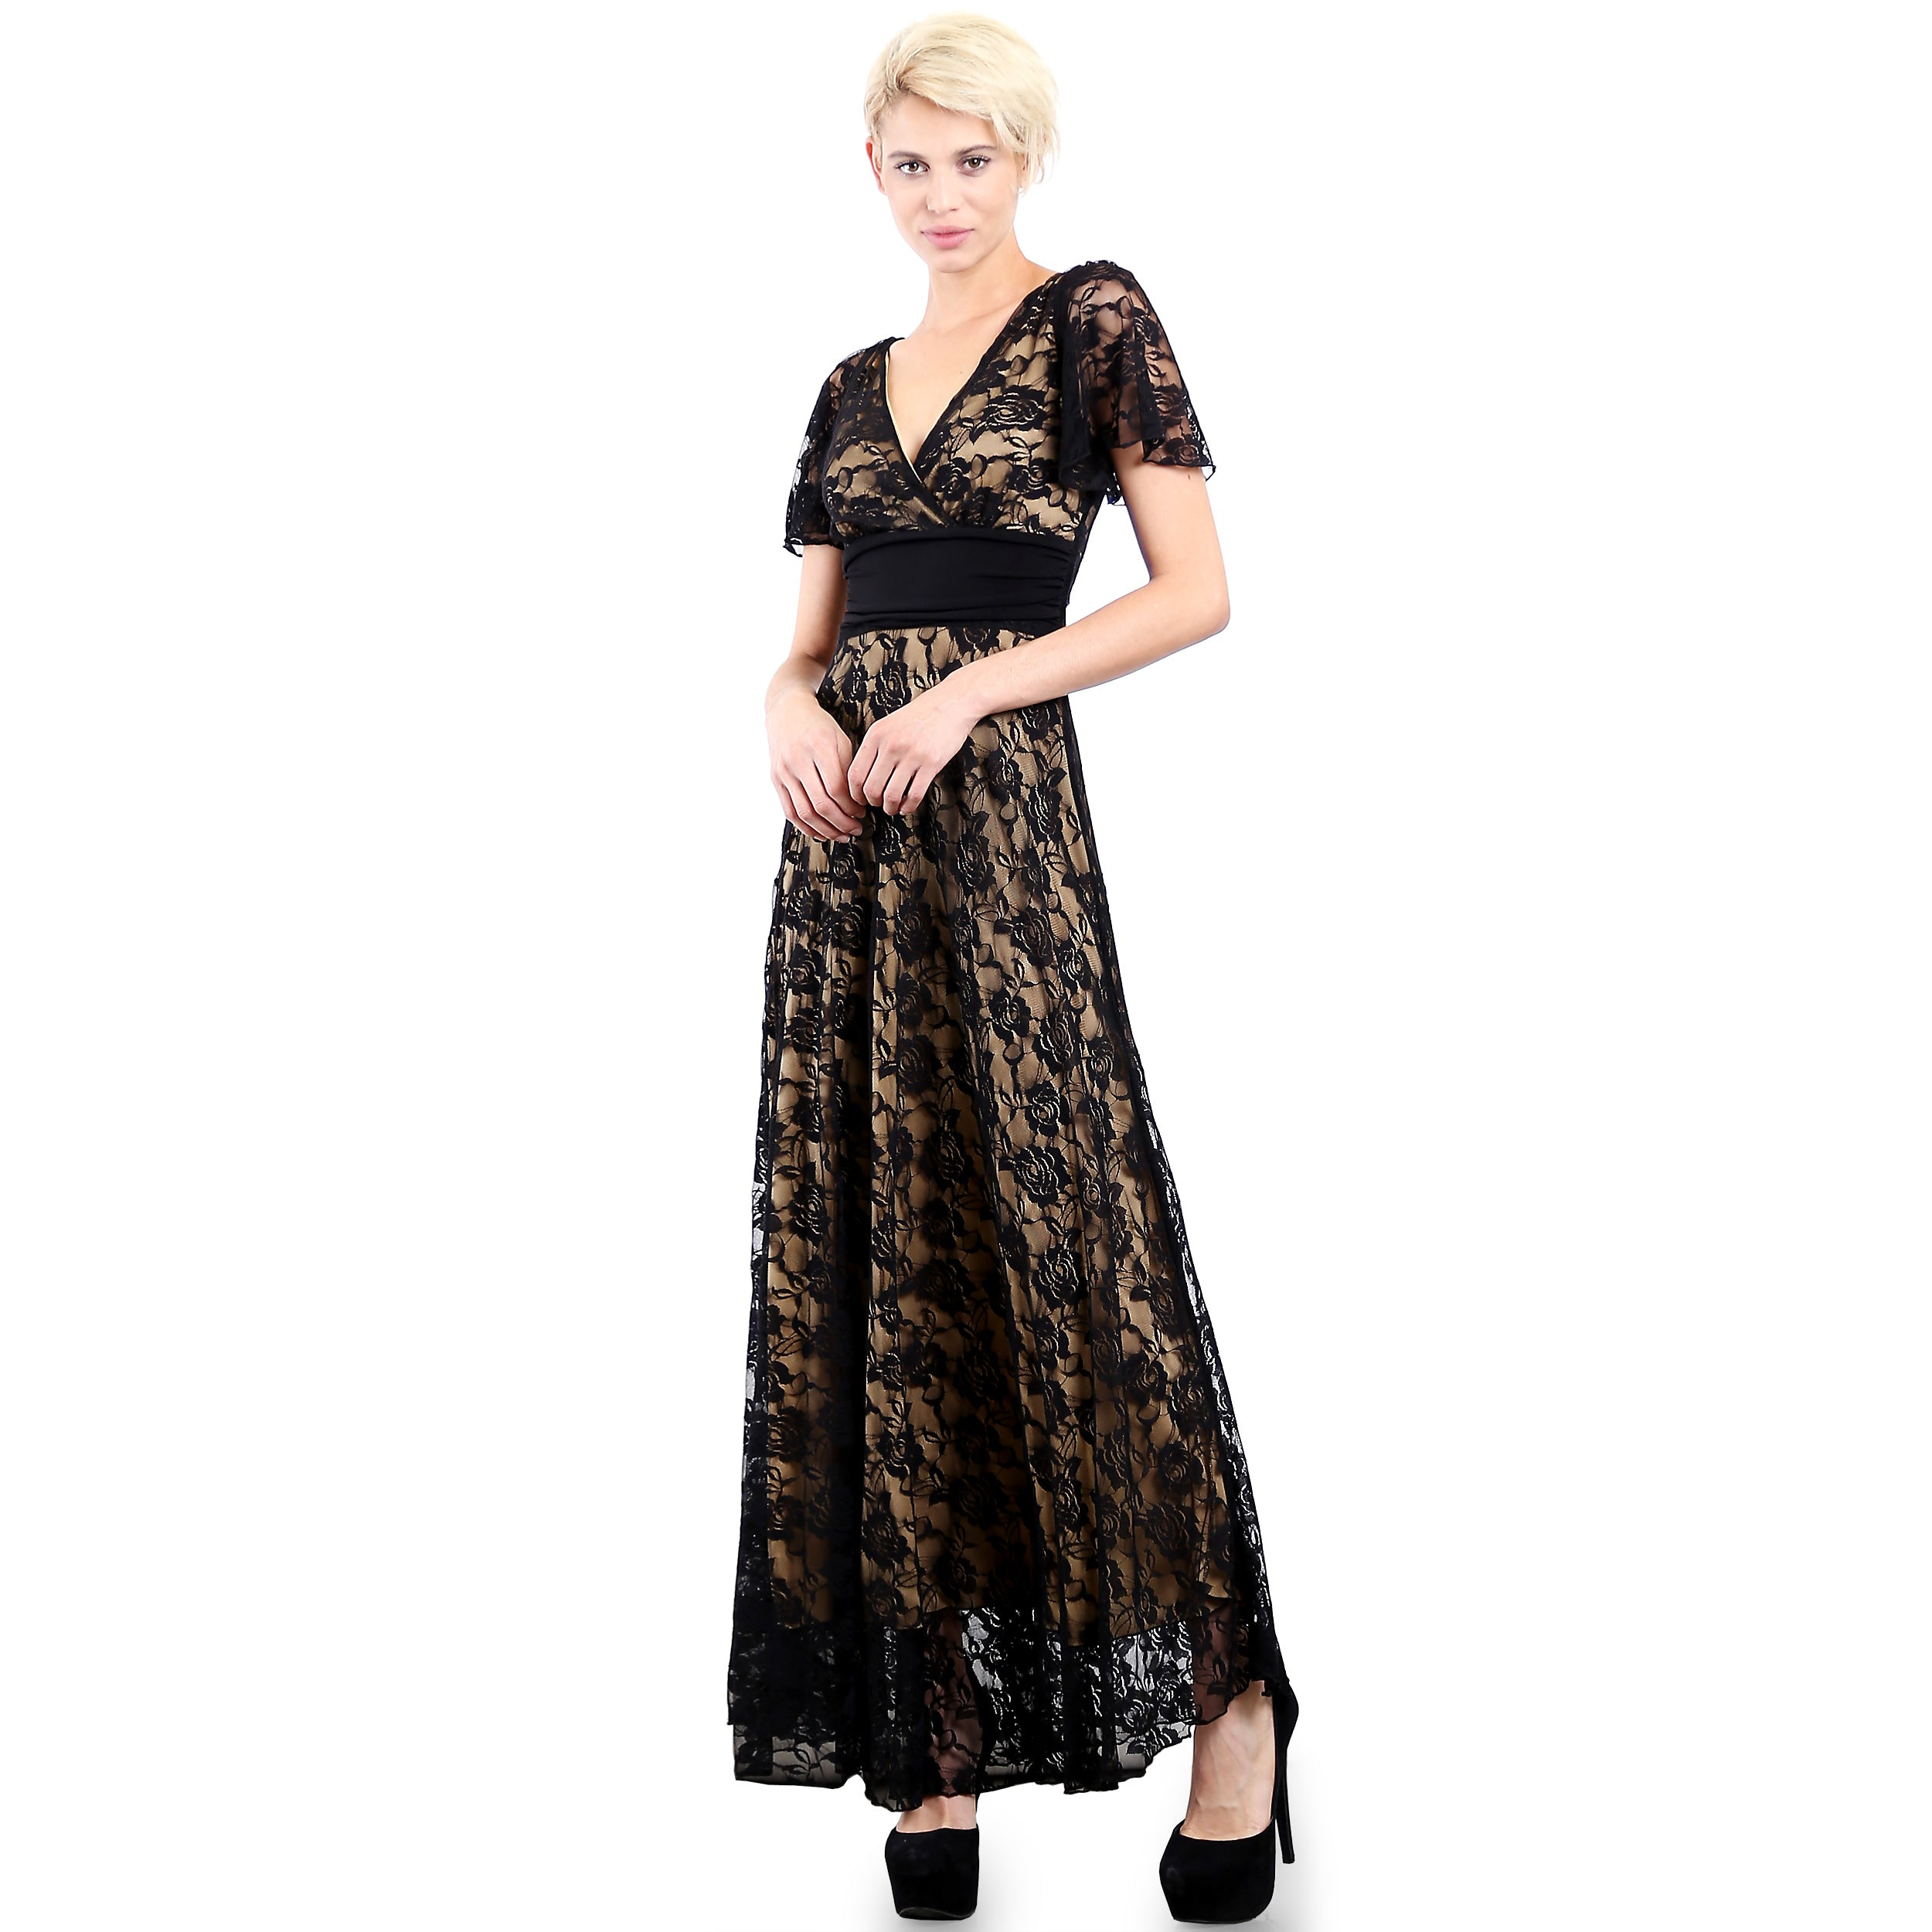 37c45aa38aa Evanese Women's Plus Size Formal Party Lace Long Dress Gown with ...